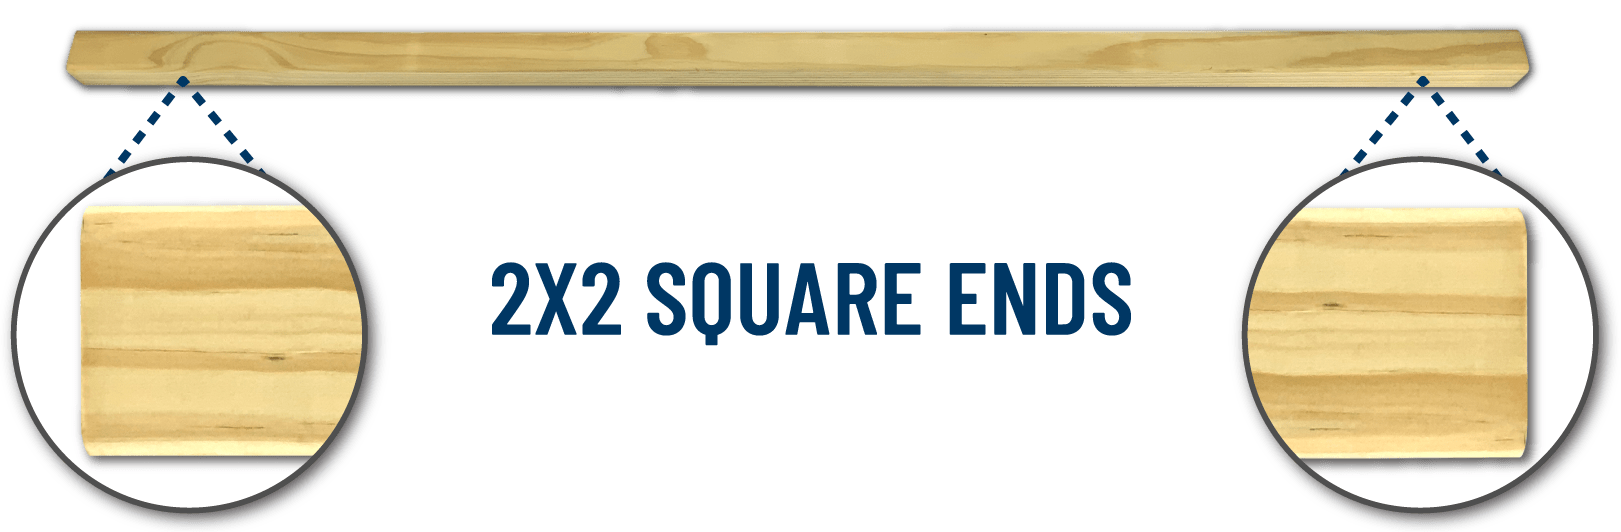 End-Breakout-Square